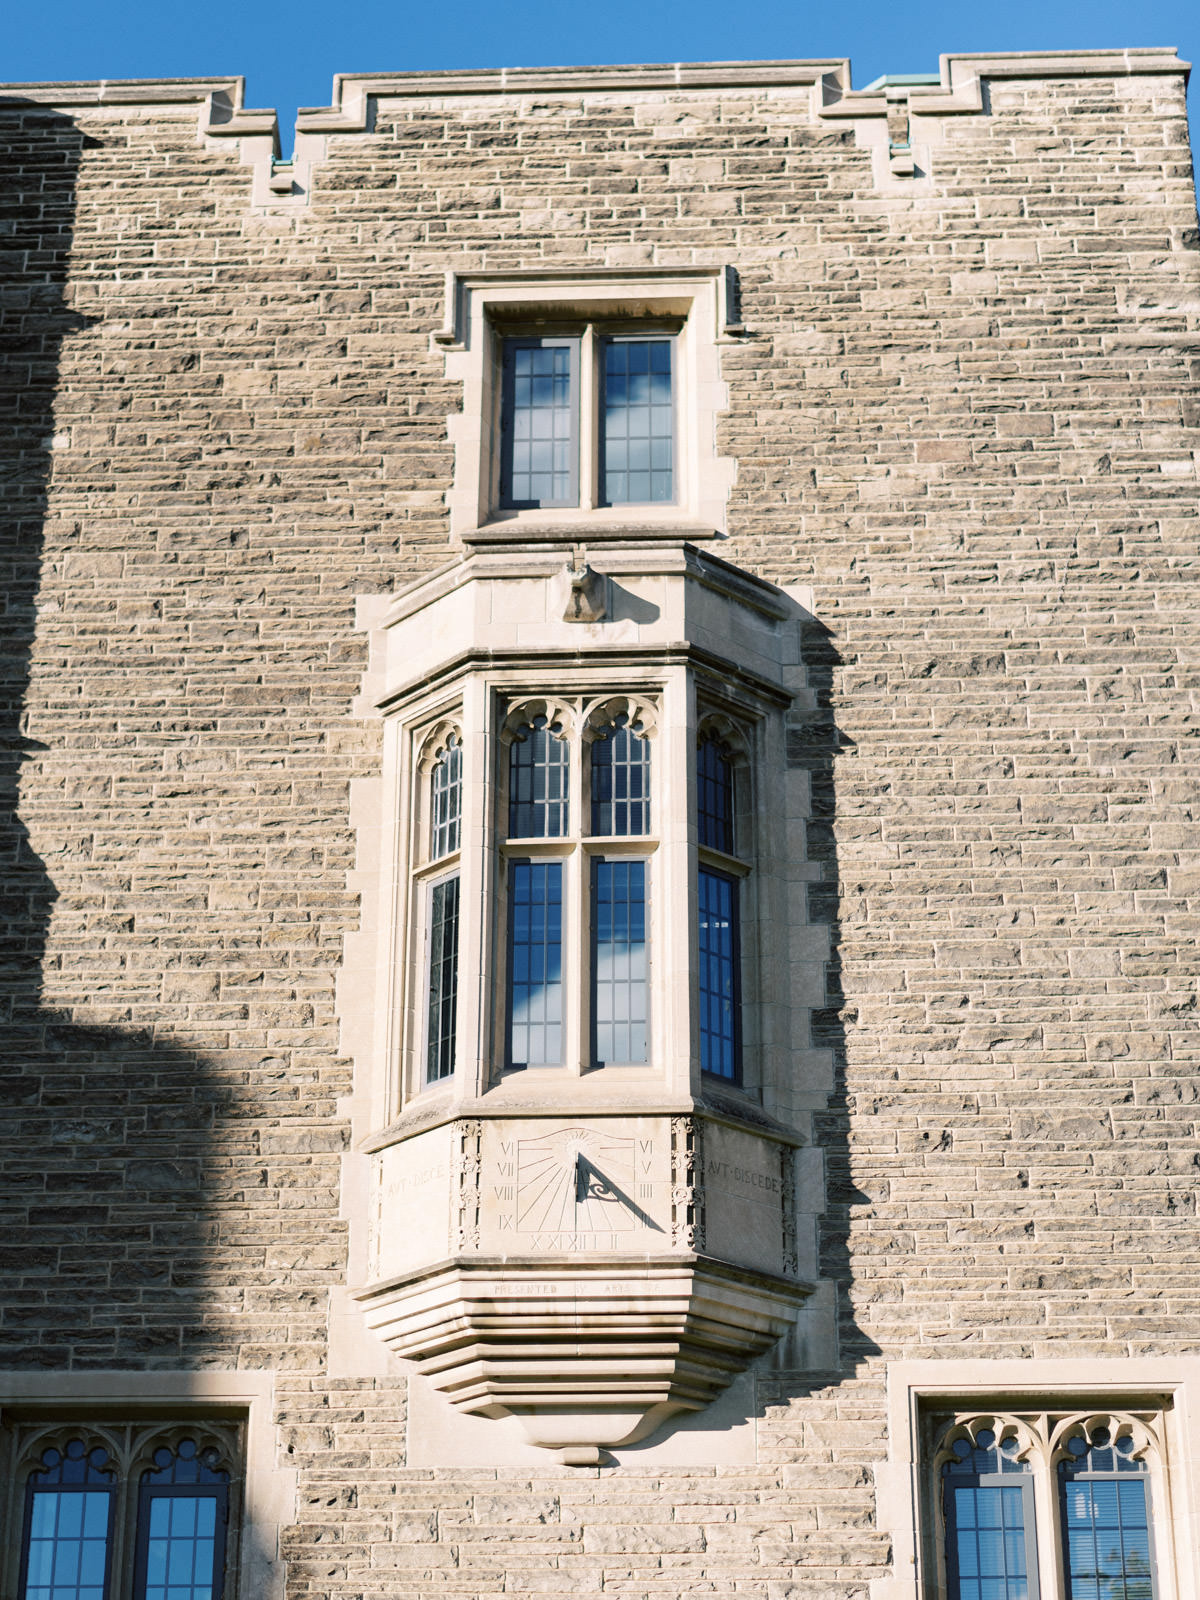 window on building at mcmaster